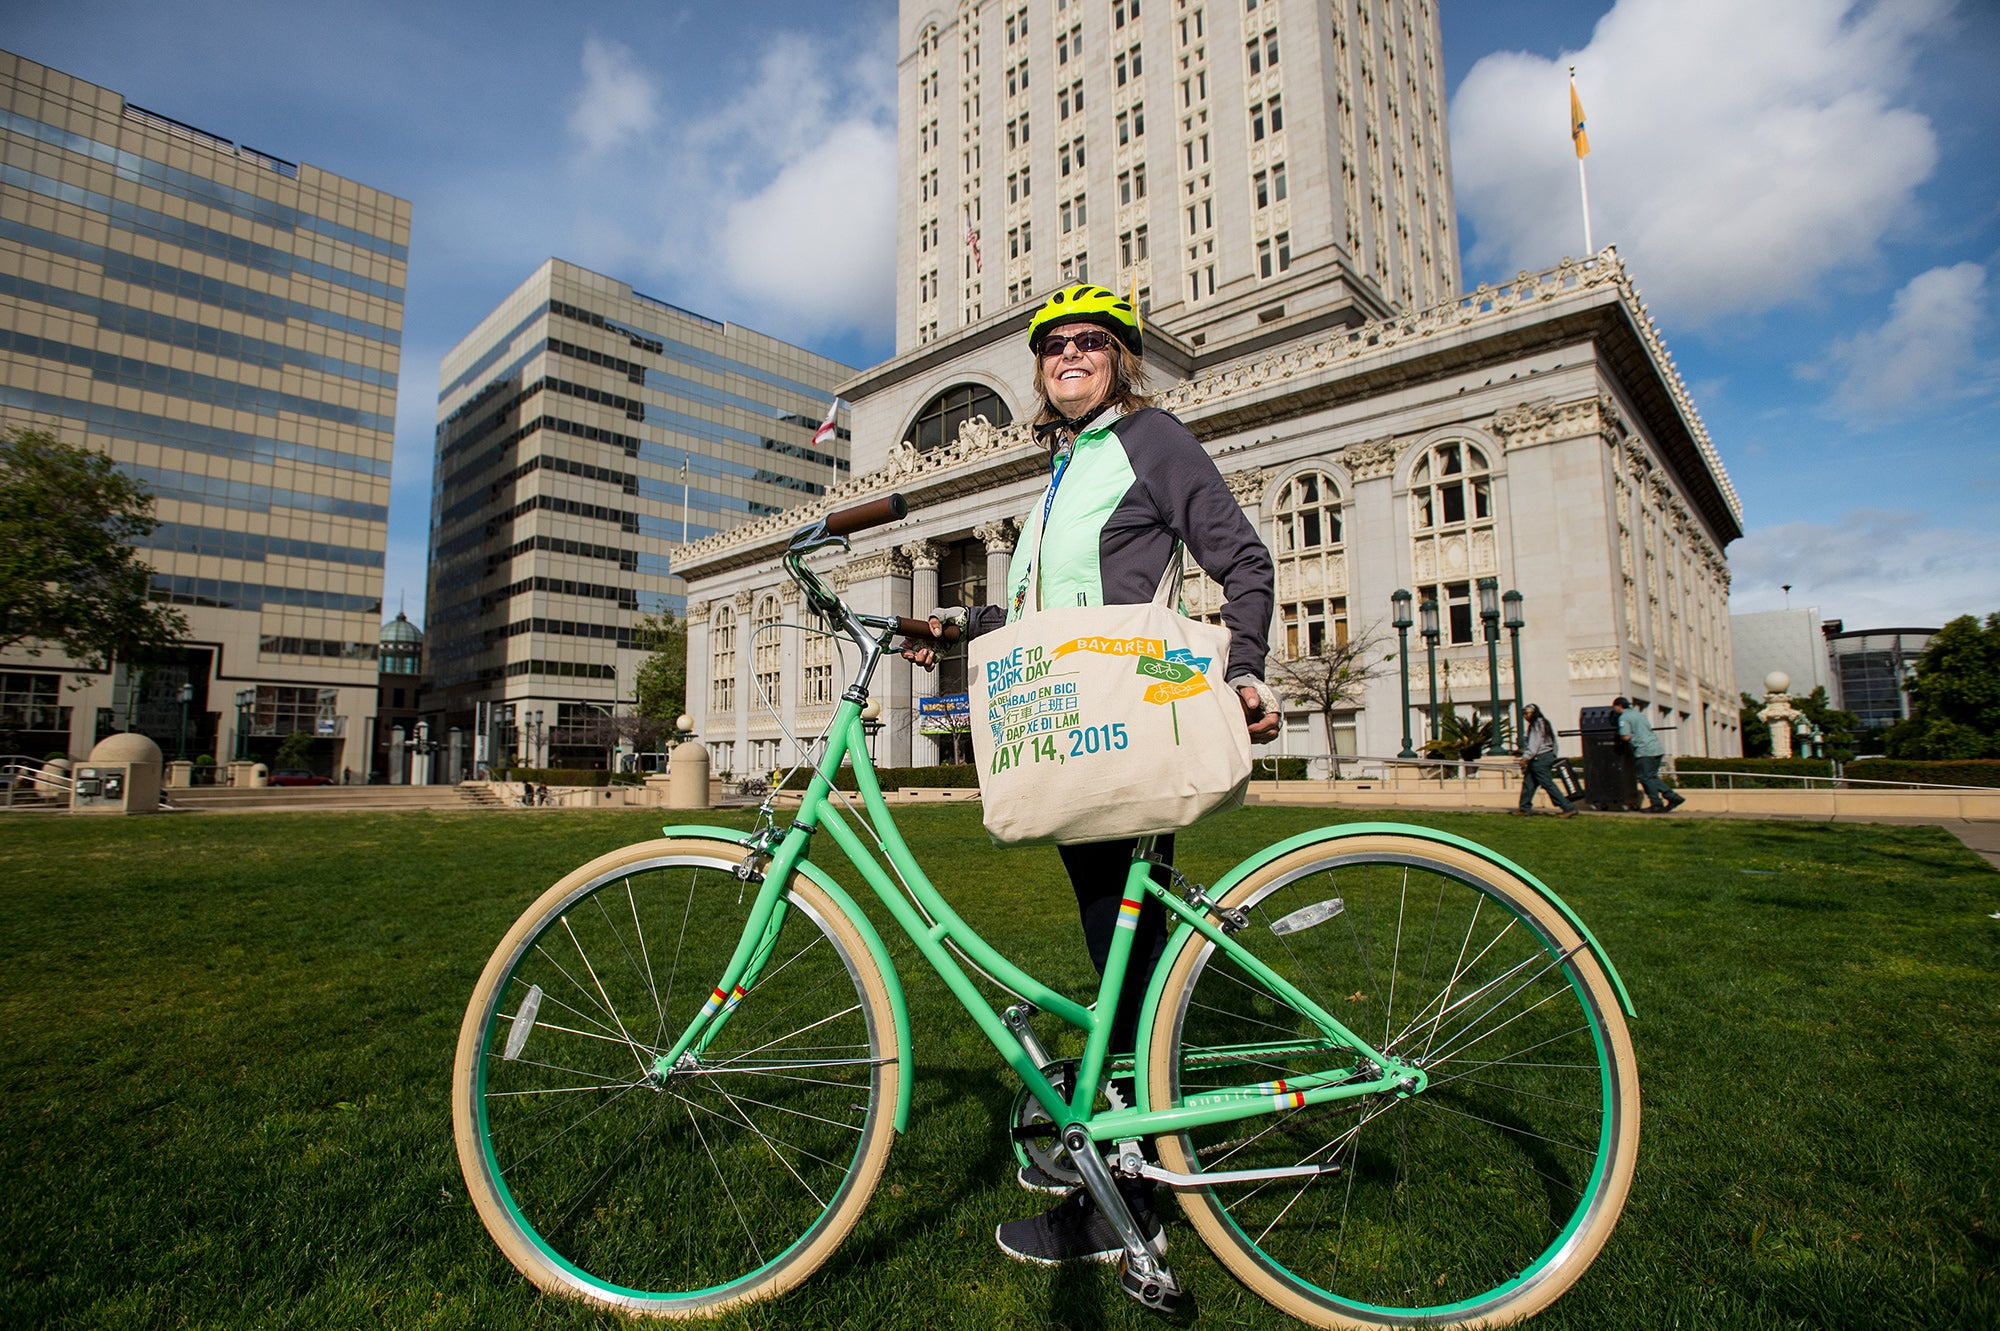 Gail Robinson poses with a Public bike she won on Bike to Work Day